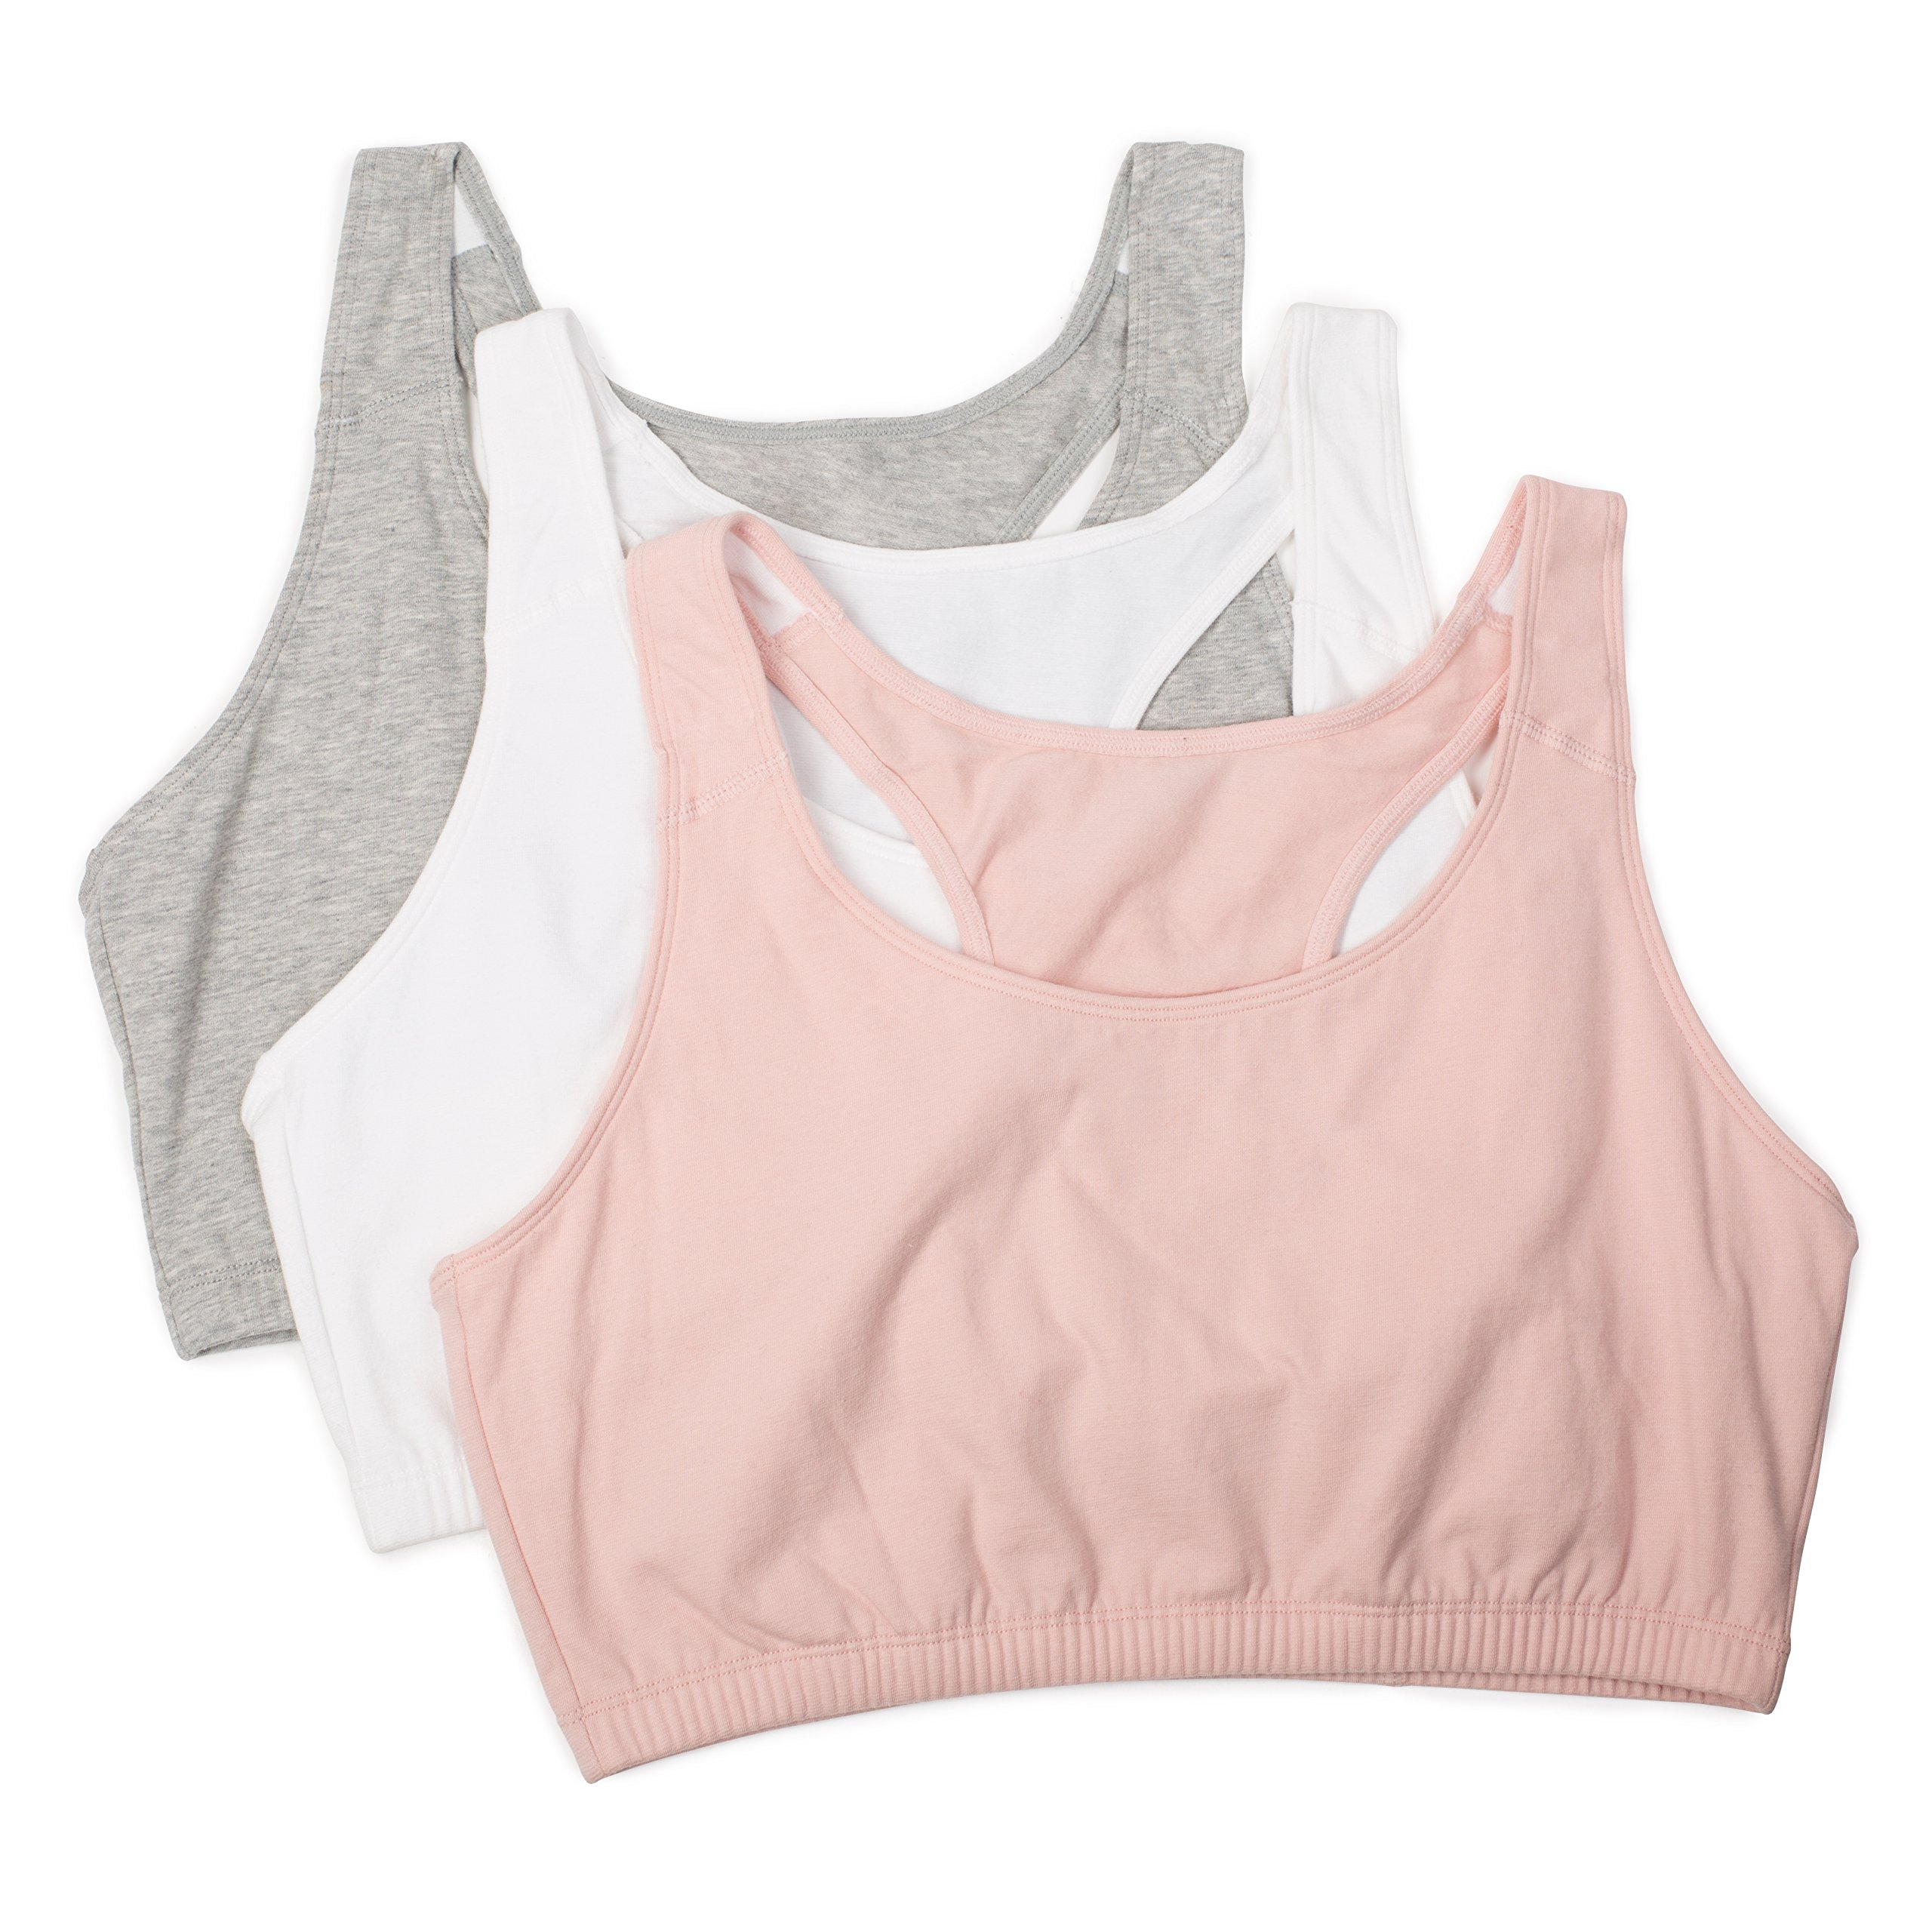 Fruit of the Loom Women's Built-Up Sports Bra 3 Pack Bra, Blushing Rose/White/Heather Grey, 44 by Fruit of the Loom